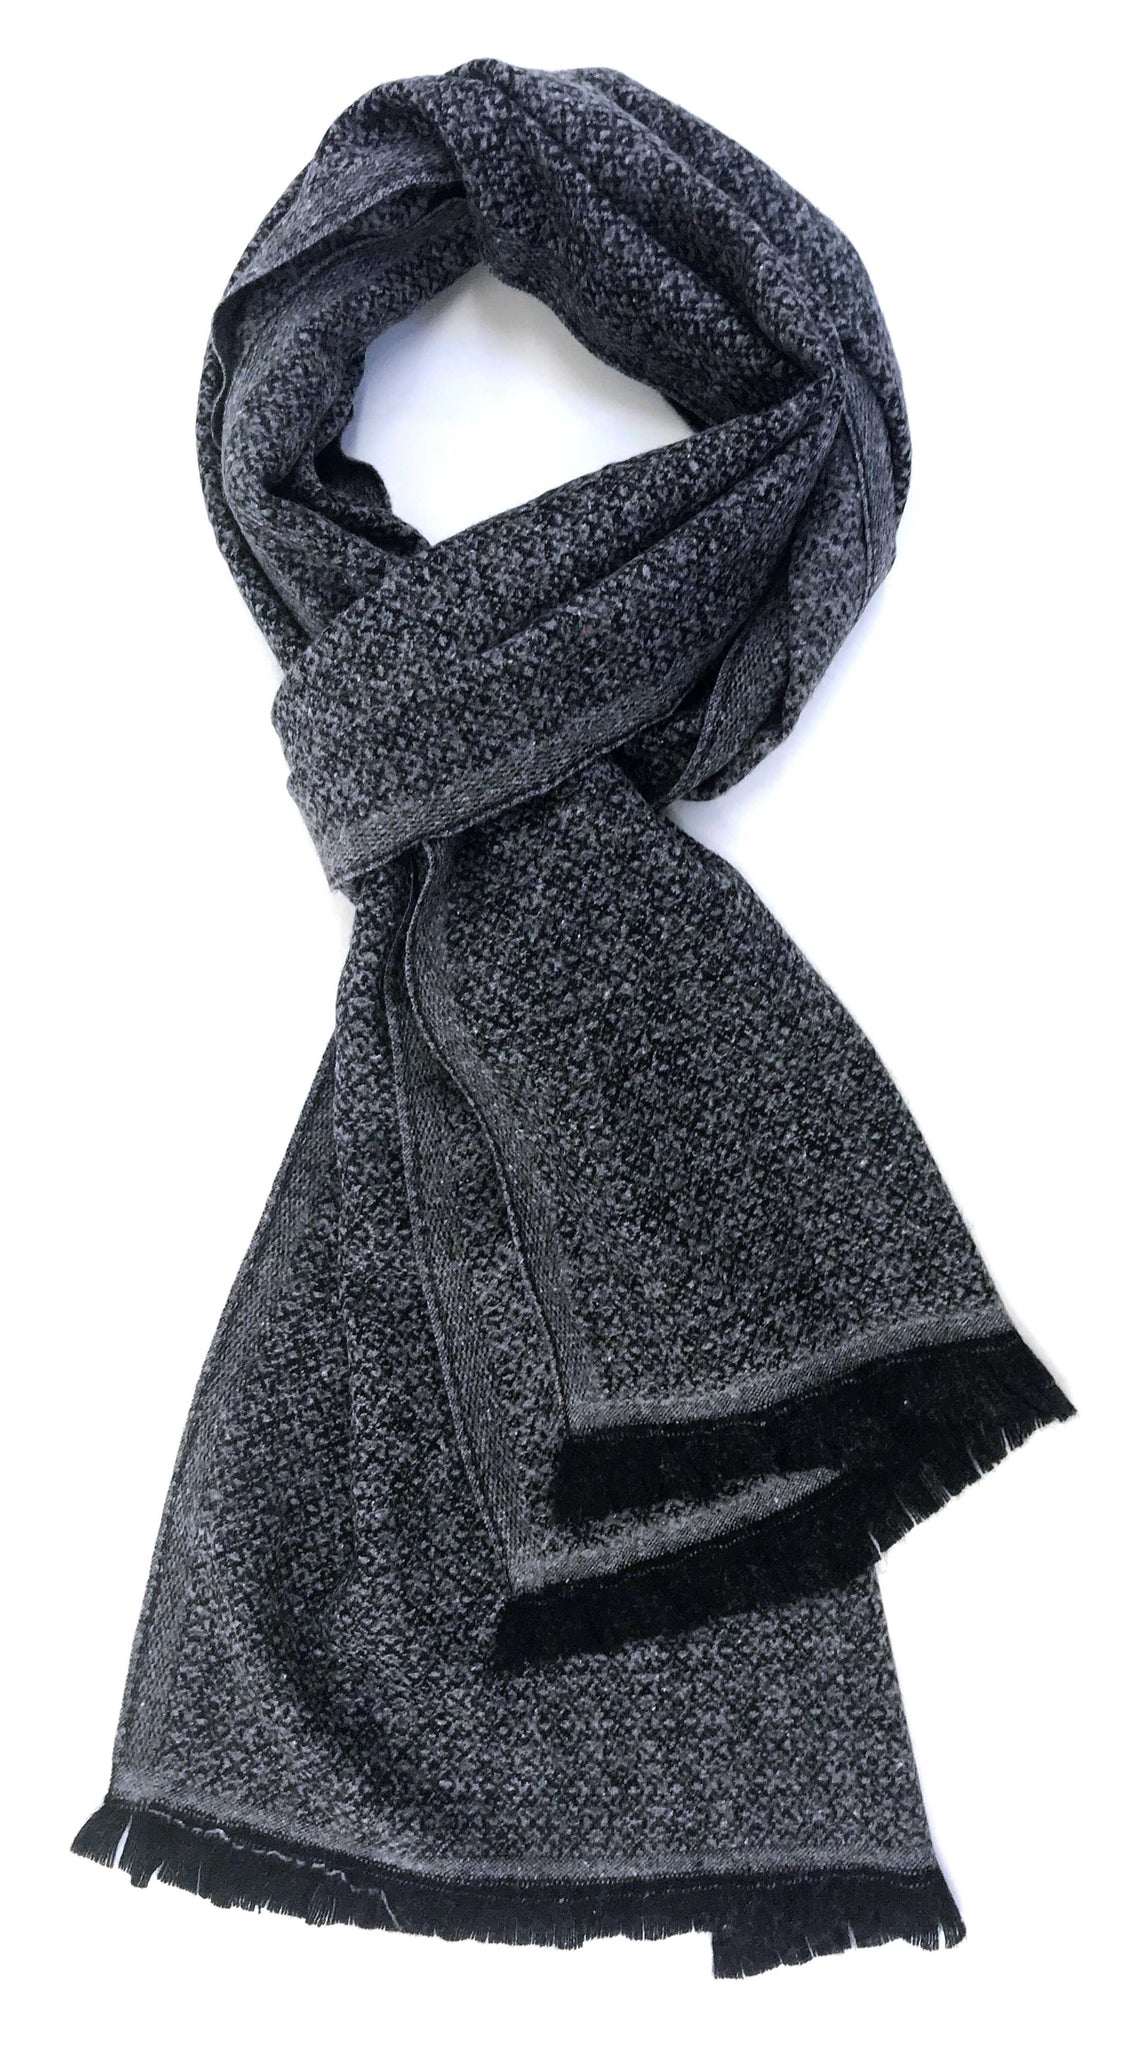 Soft cashmere blend scarf with fine black and grey allover pattern - Marie-Pierre Rousseau